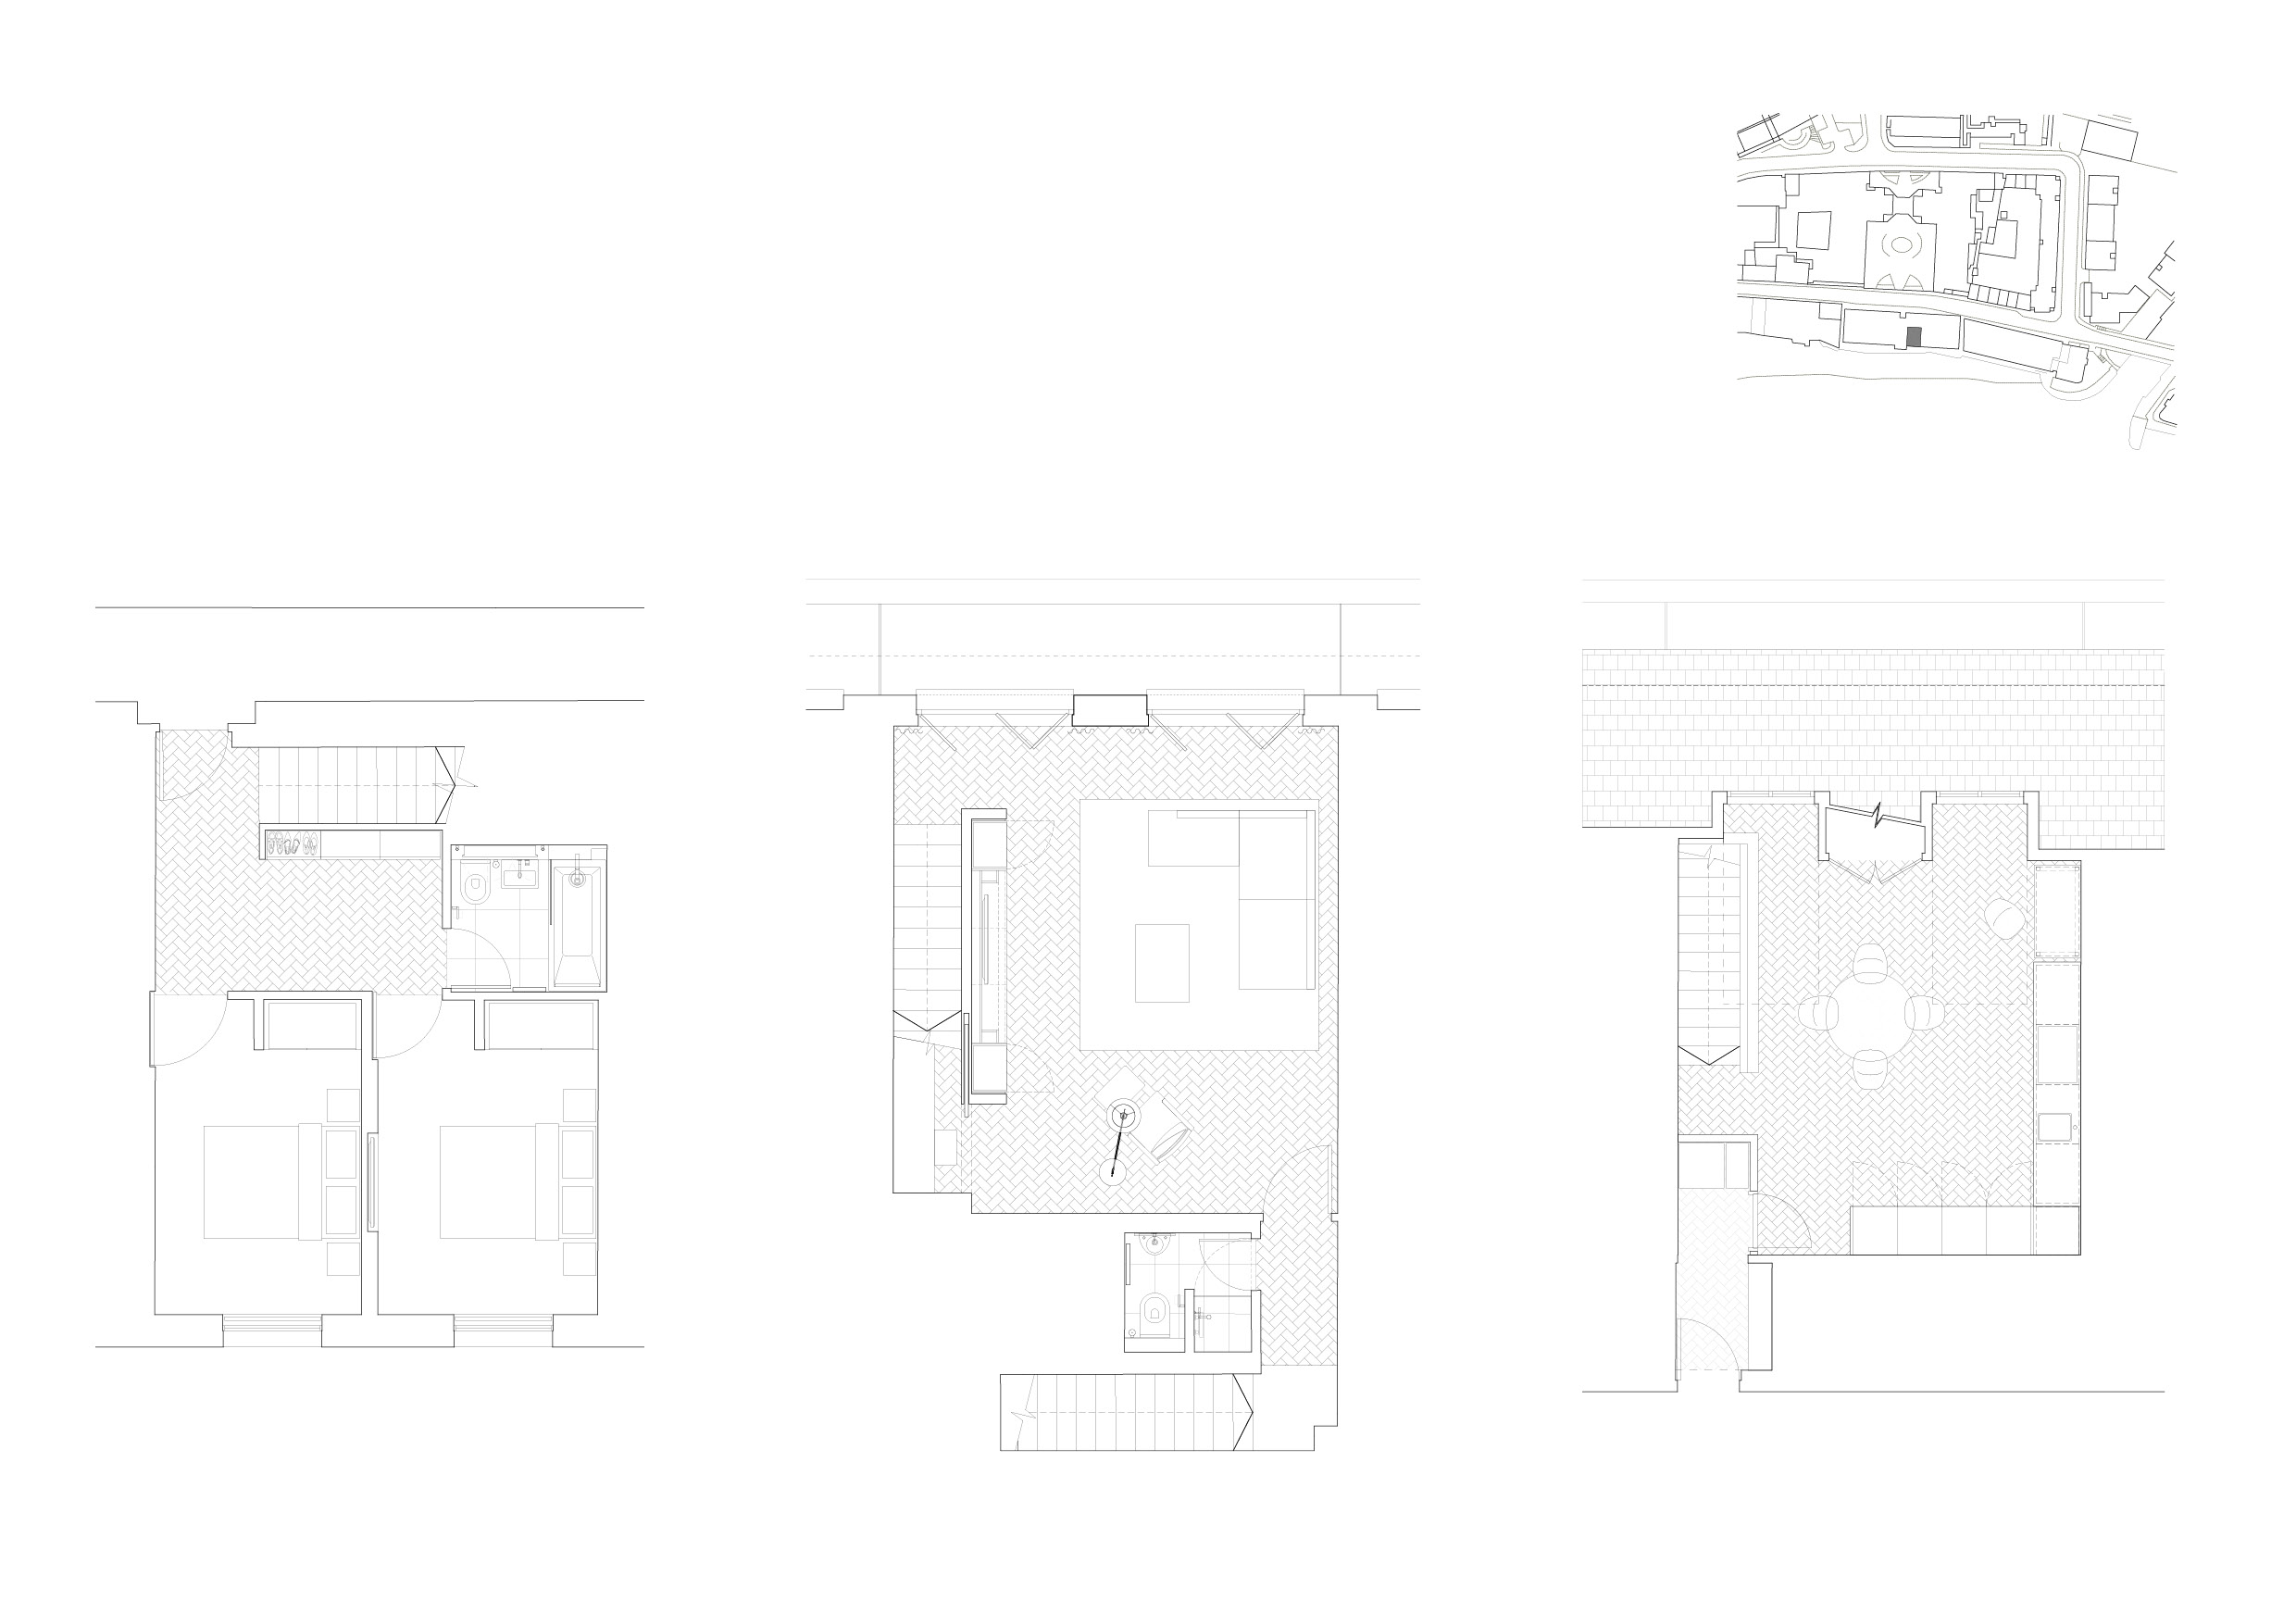 private-narrow street-plans-01